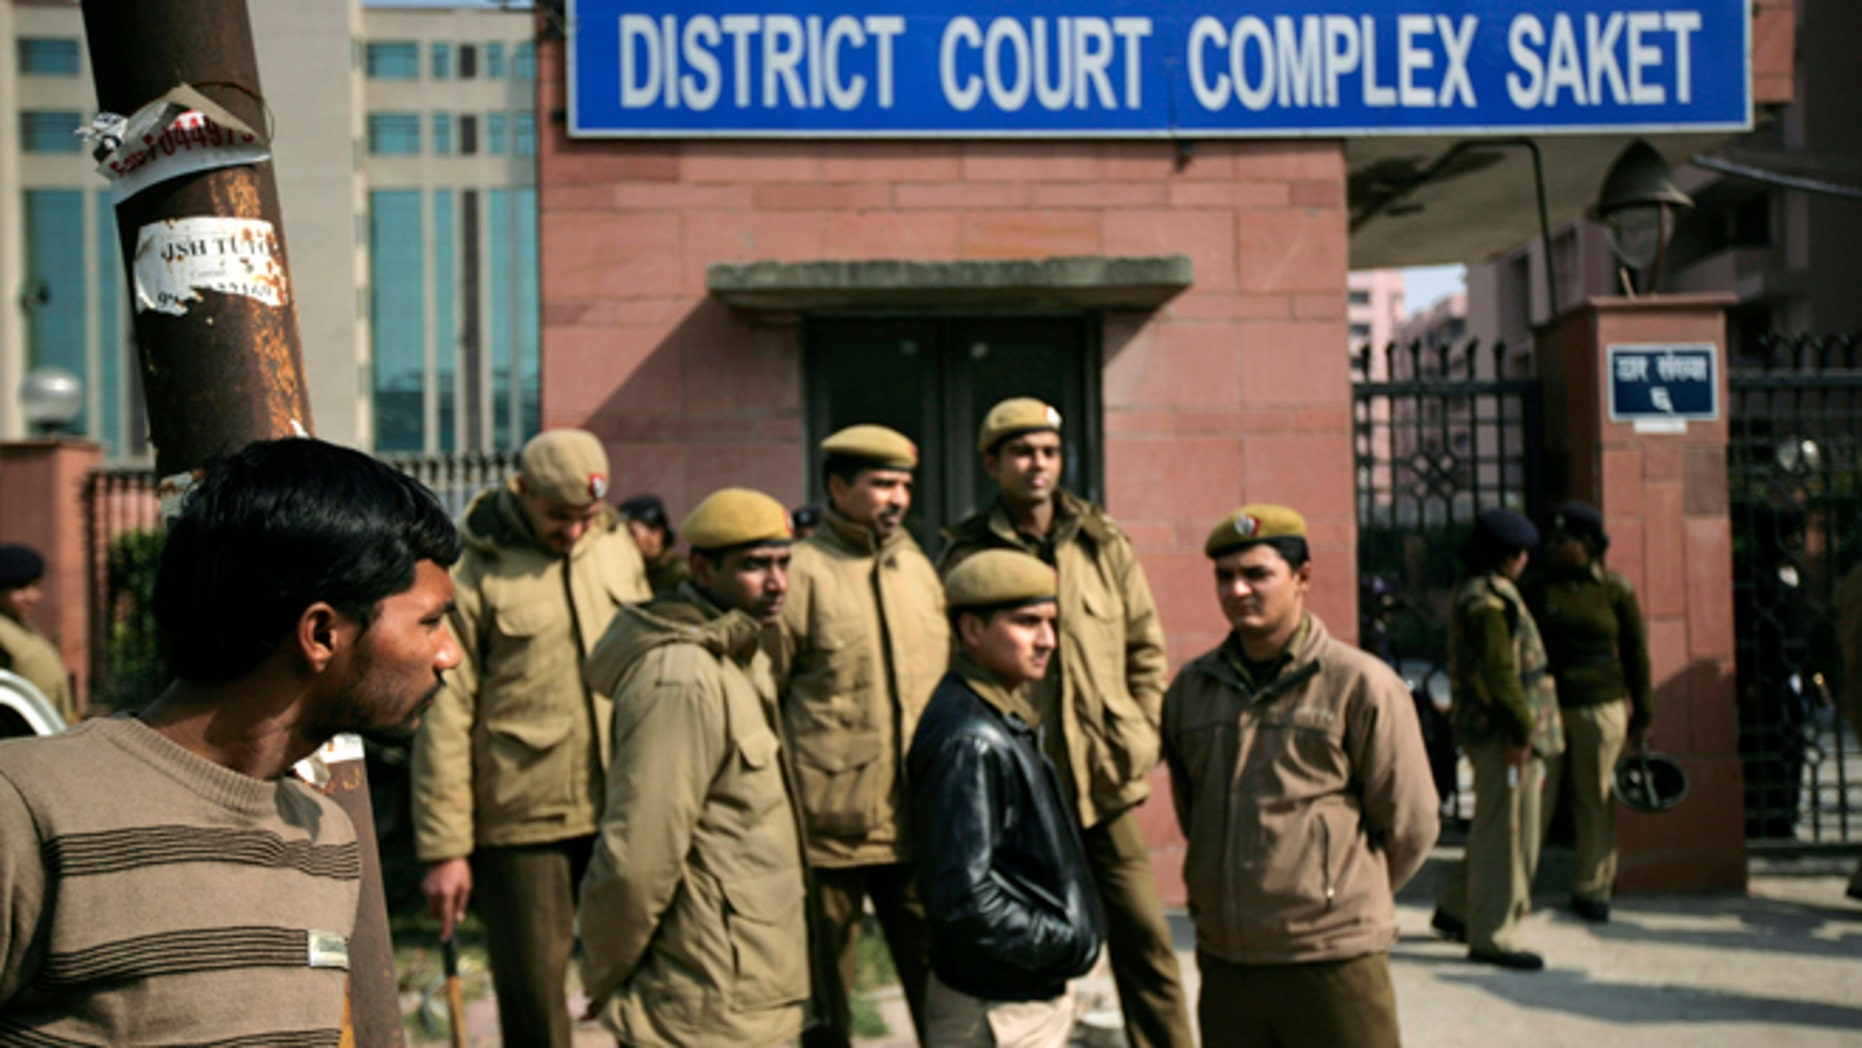 Jan. 24, 2013: Delhi policemen stand guard near the gate of a district court where the accused in the gang rape and murder of a 23-year-old student are undergoing trial, in New Delhi, India.